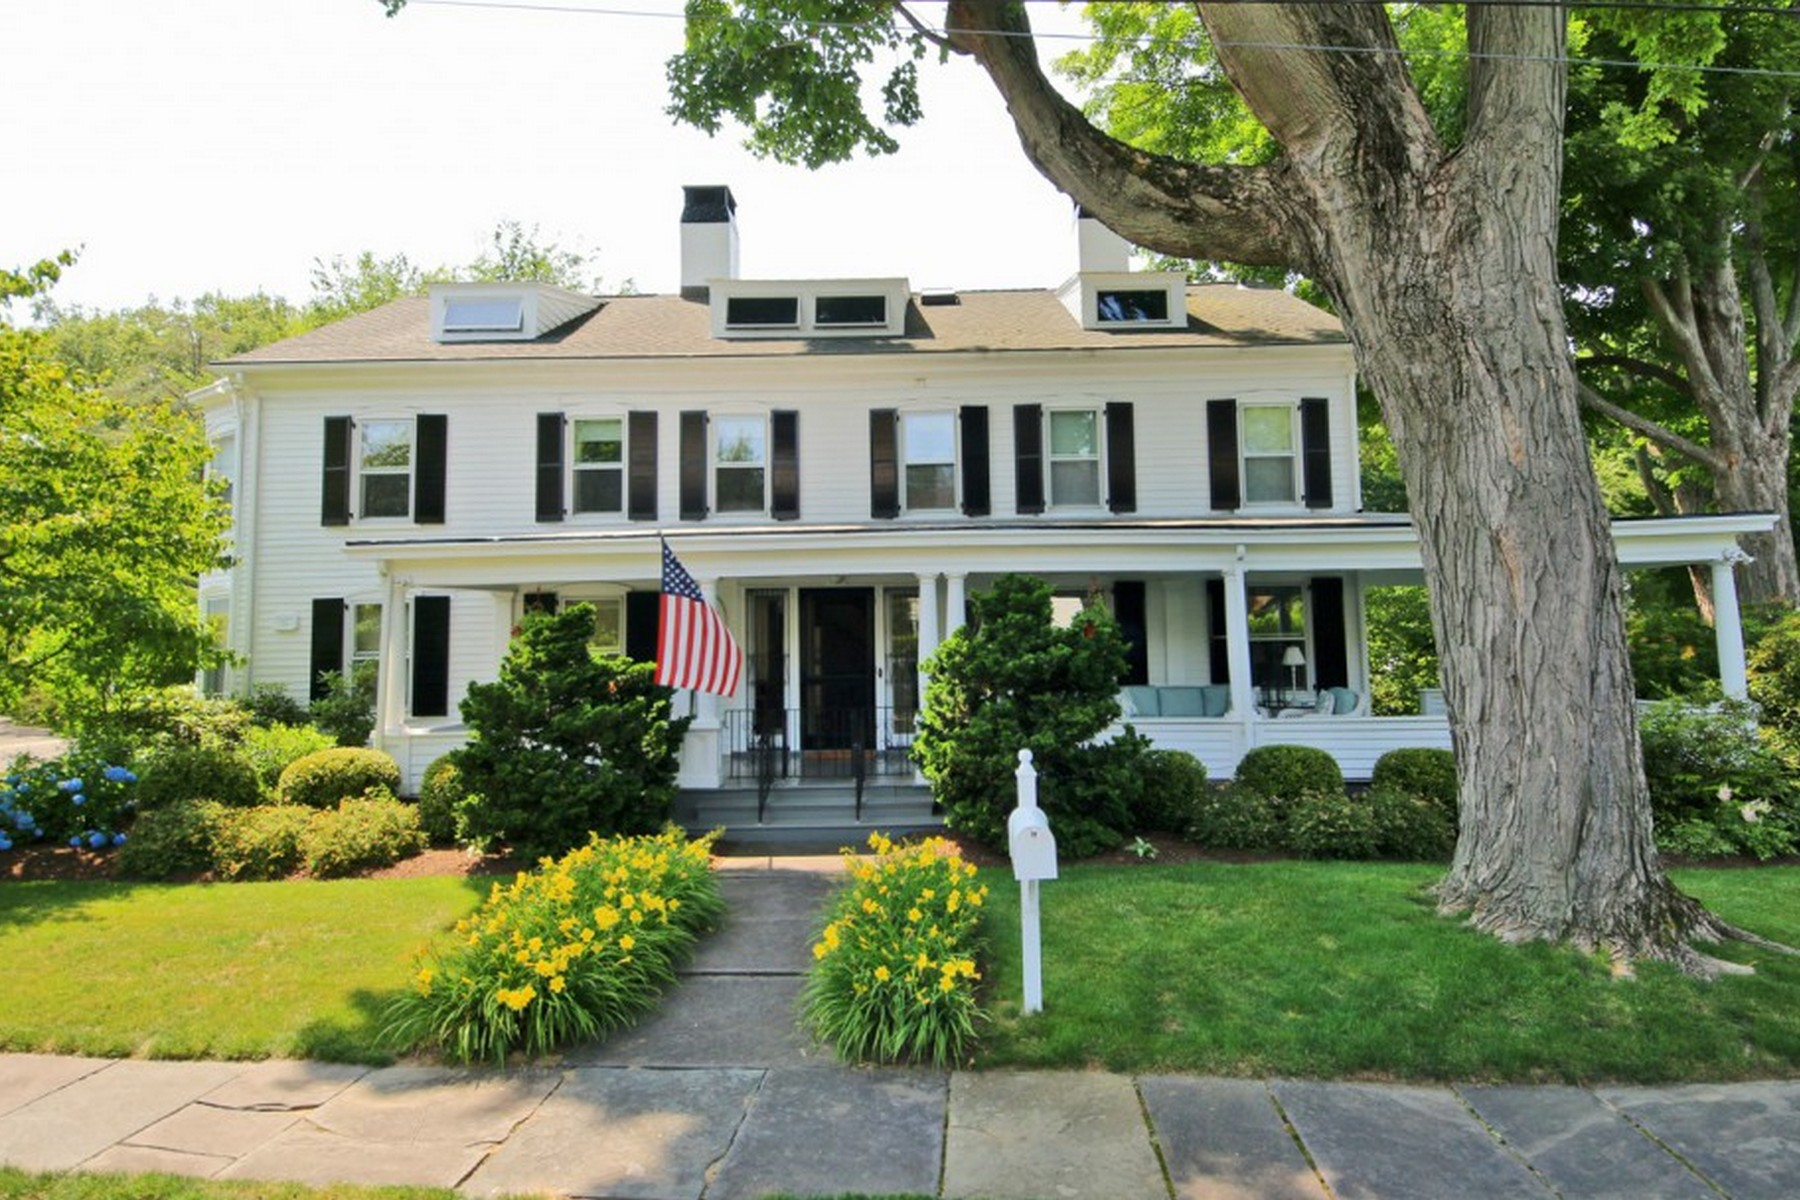 Single Family Home for Sale at PAUL SHEFFIELD HOUSE - SOUTHPORT VILLAGE 72 Willow Fairfield, Connecticut 06890 United States